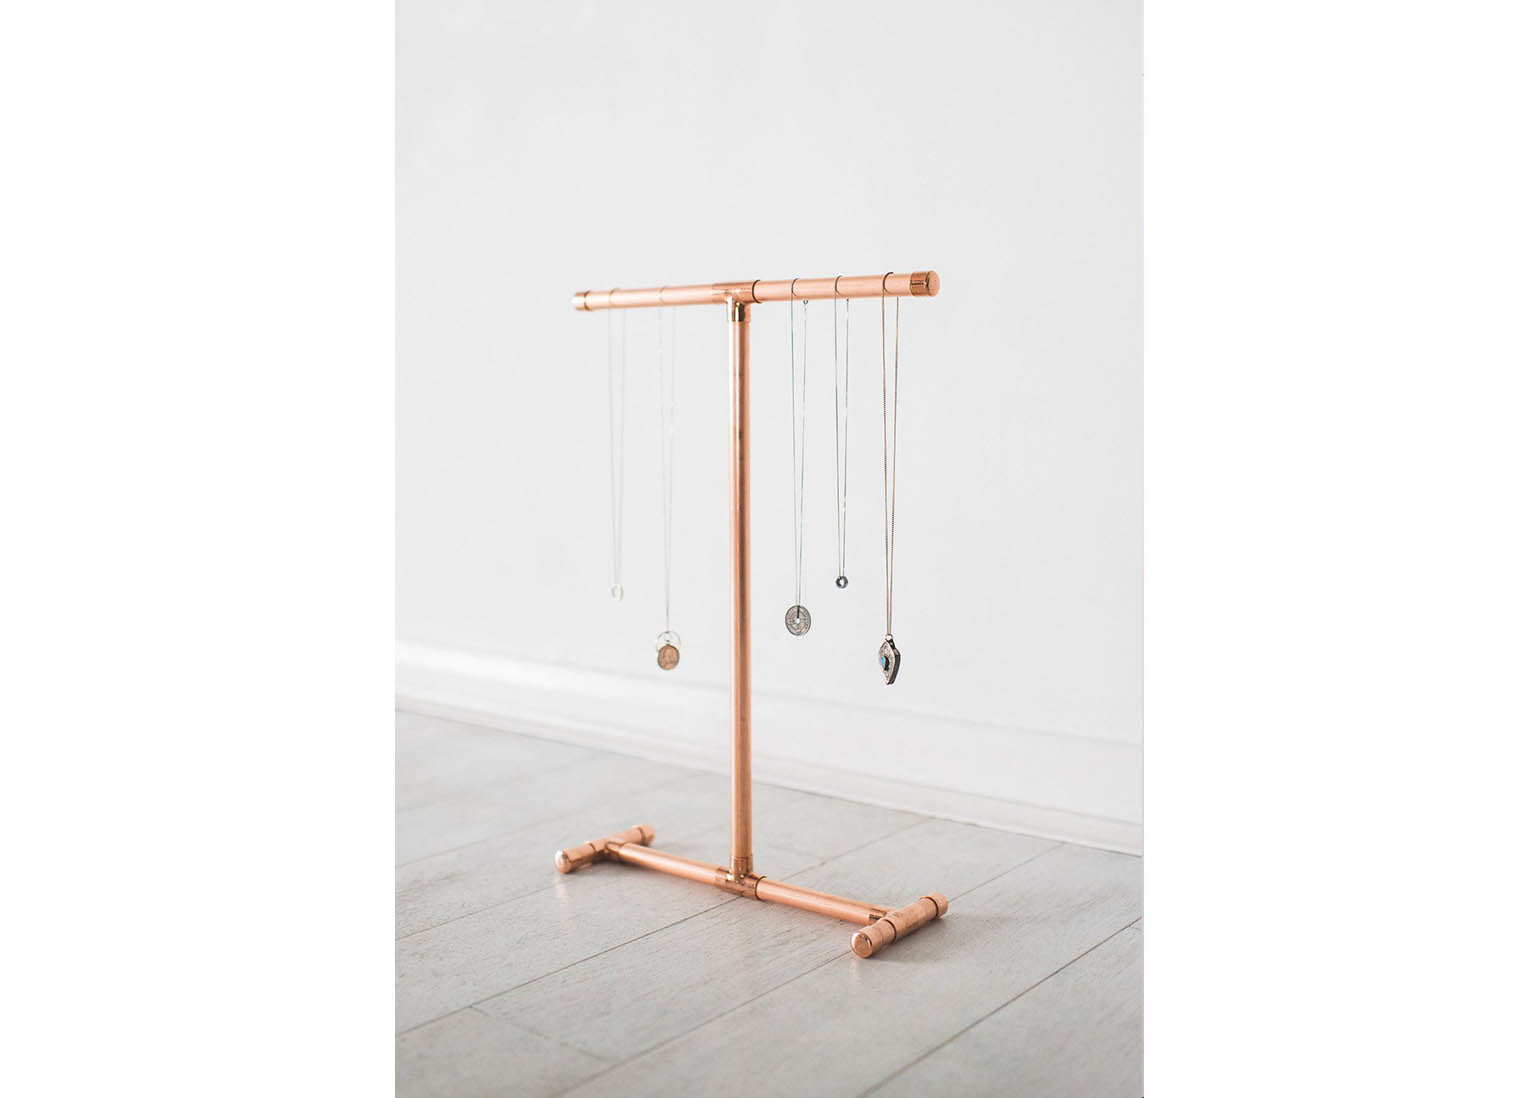 A beautiful photograph of a unique copper necklace stand by notonthehighstreet.com